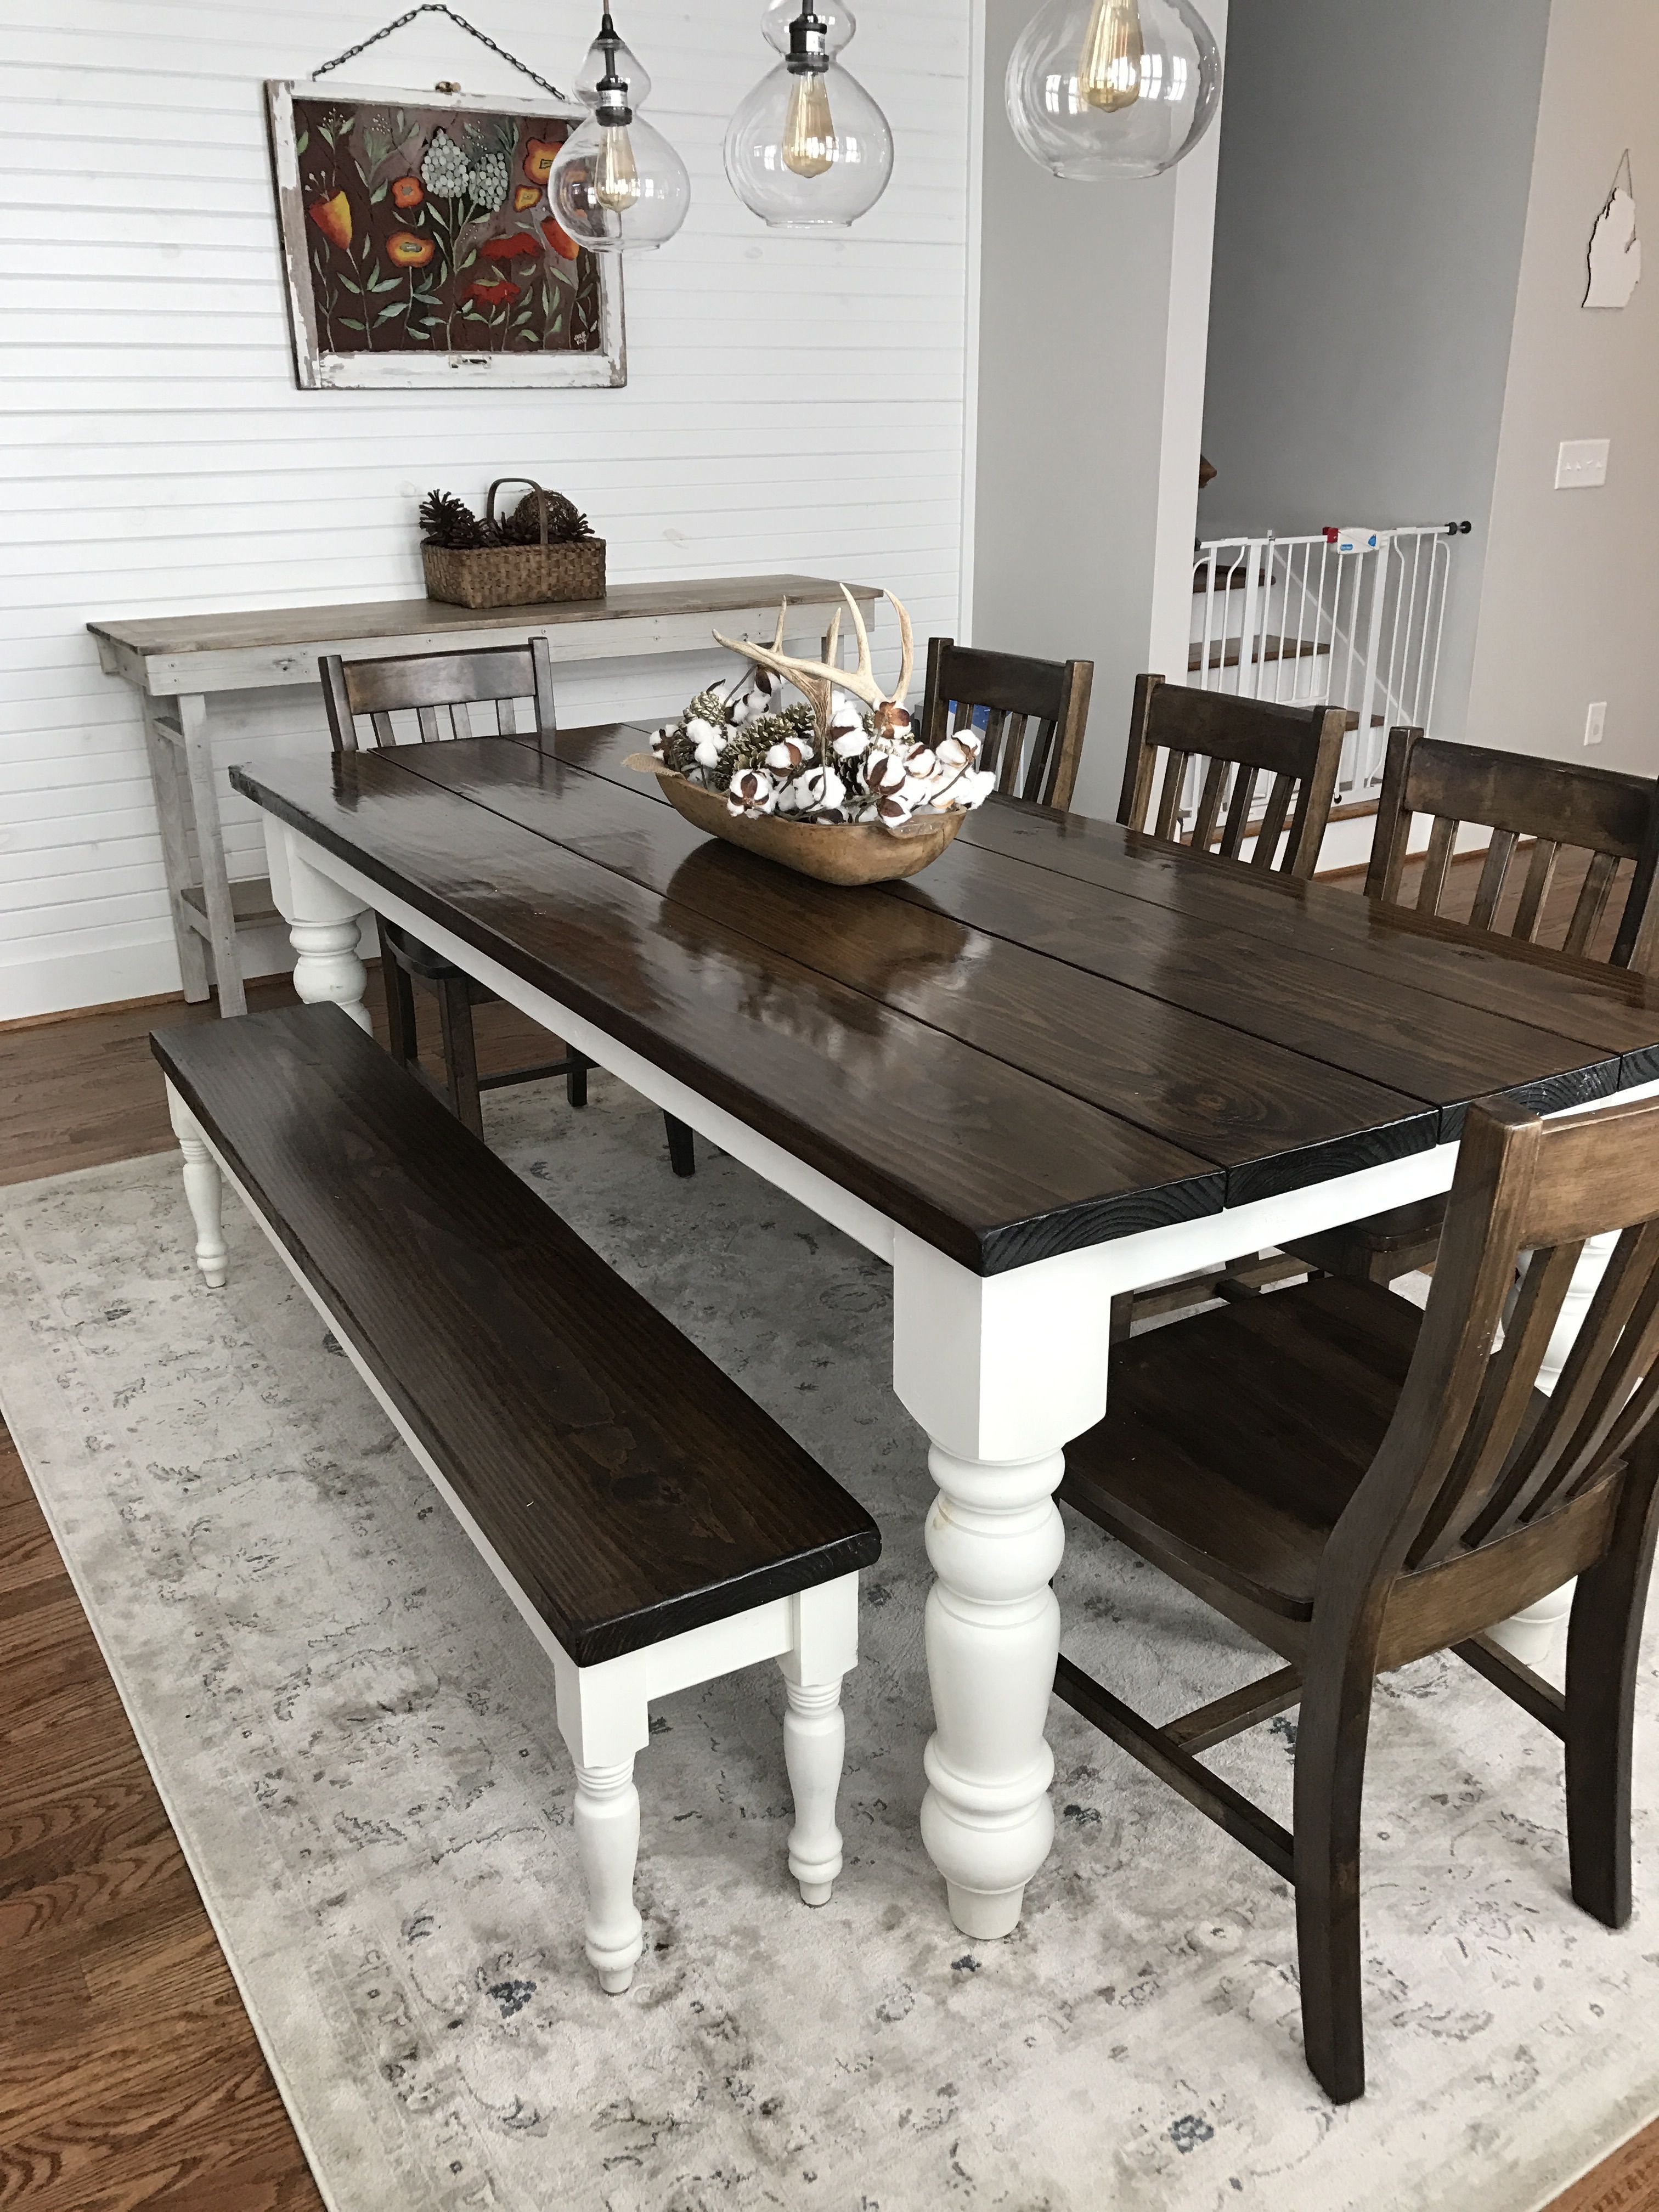 Awesome Farmhouse Kitchen Table And Bench The Most Brilliant As Well As Beaut Farmhouse Dining Room Table Modern Farmhouse Dining Farmhouse Style Dining Room